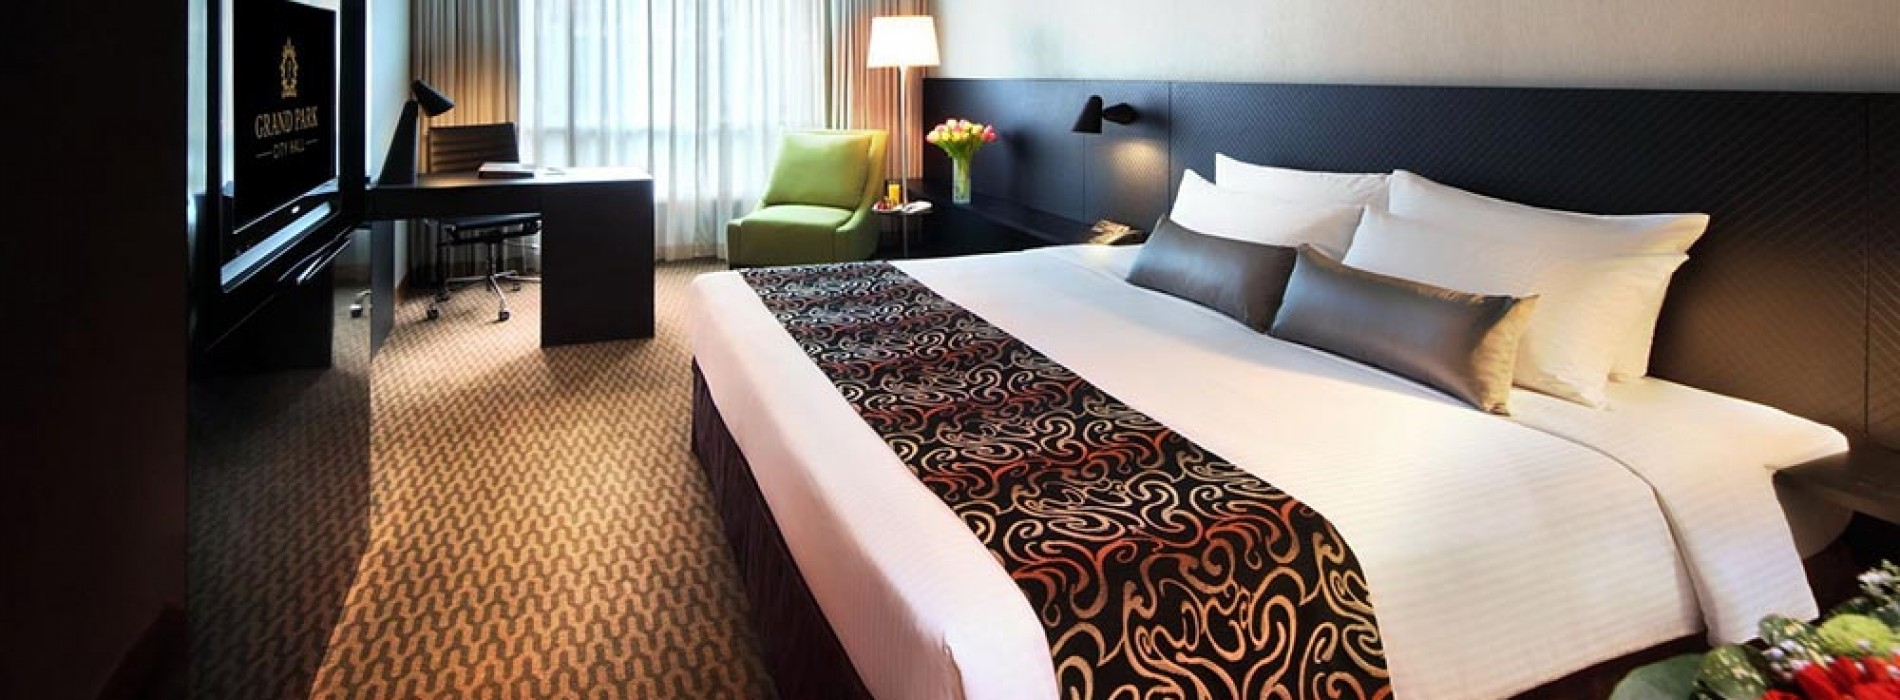 The Park Hotel Group offers state-of-the-art facilities